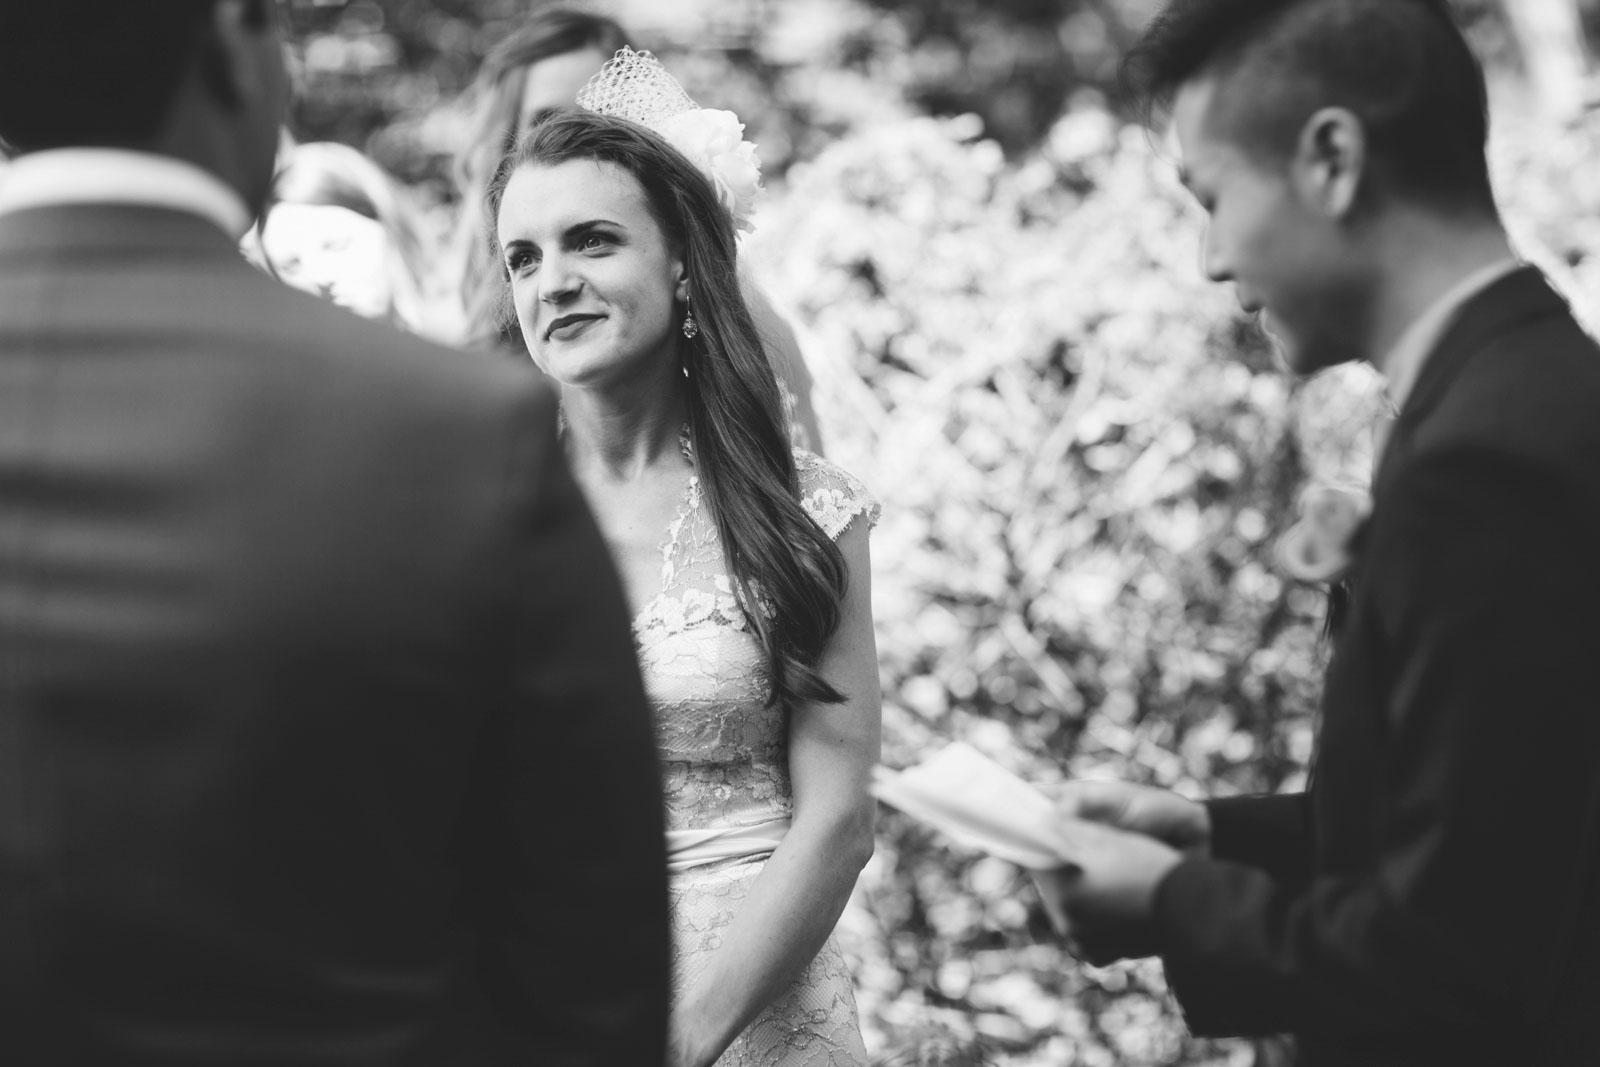 moody black and white shot of bride looking lovingly at groom while he says his vows